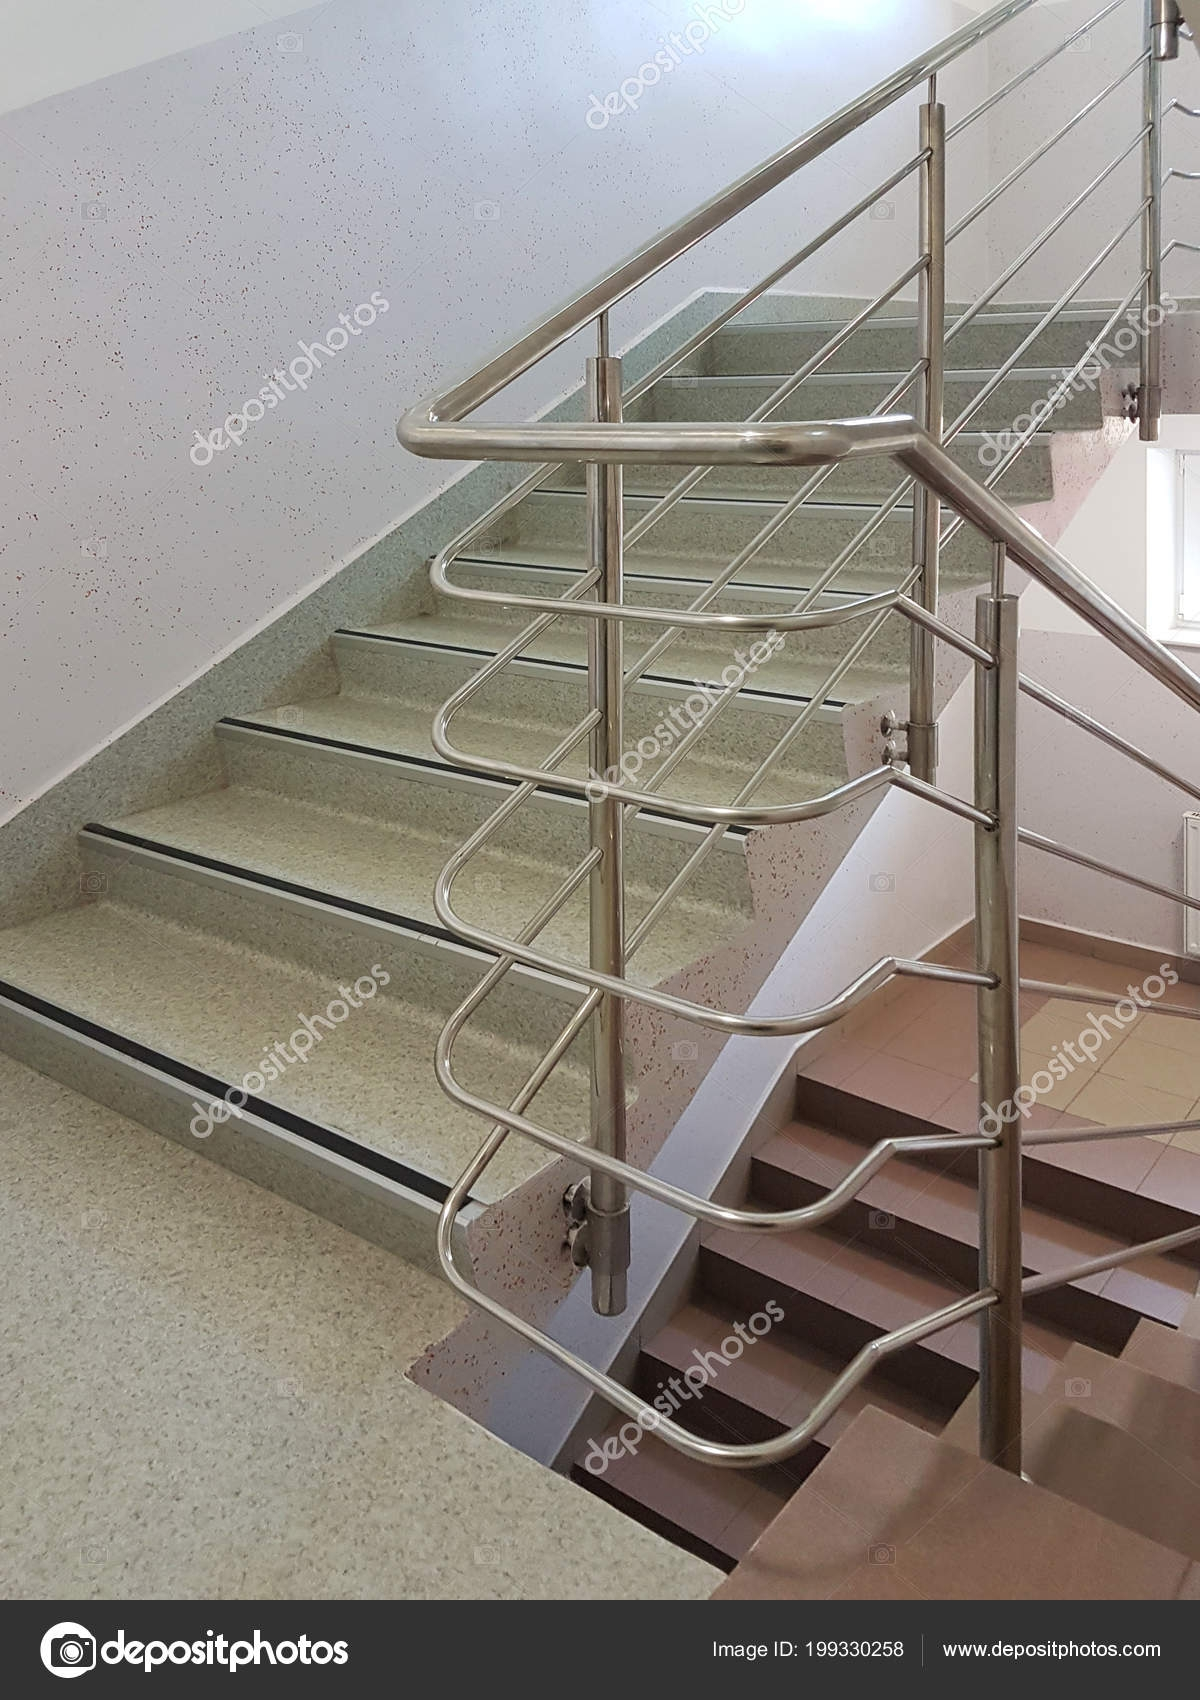 Pictures Handrails Staircase Stainless Steel Handrails Modern   Stainless Handrails For Stairs   Toughened Glass   Outdoor   Mild Steel Handrail   Commercial Building   Metal